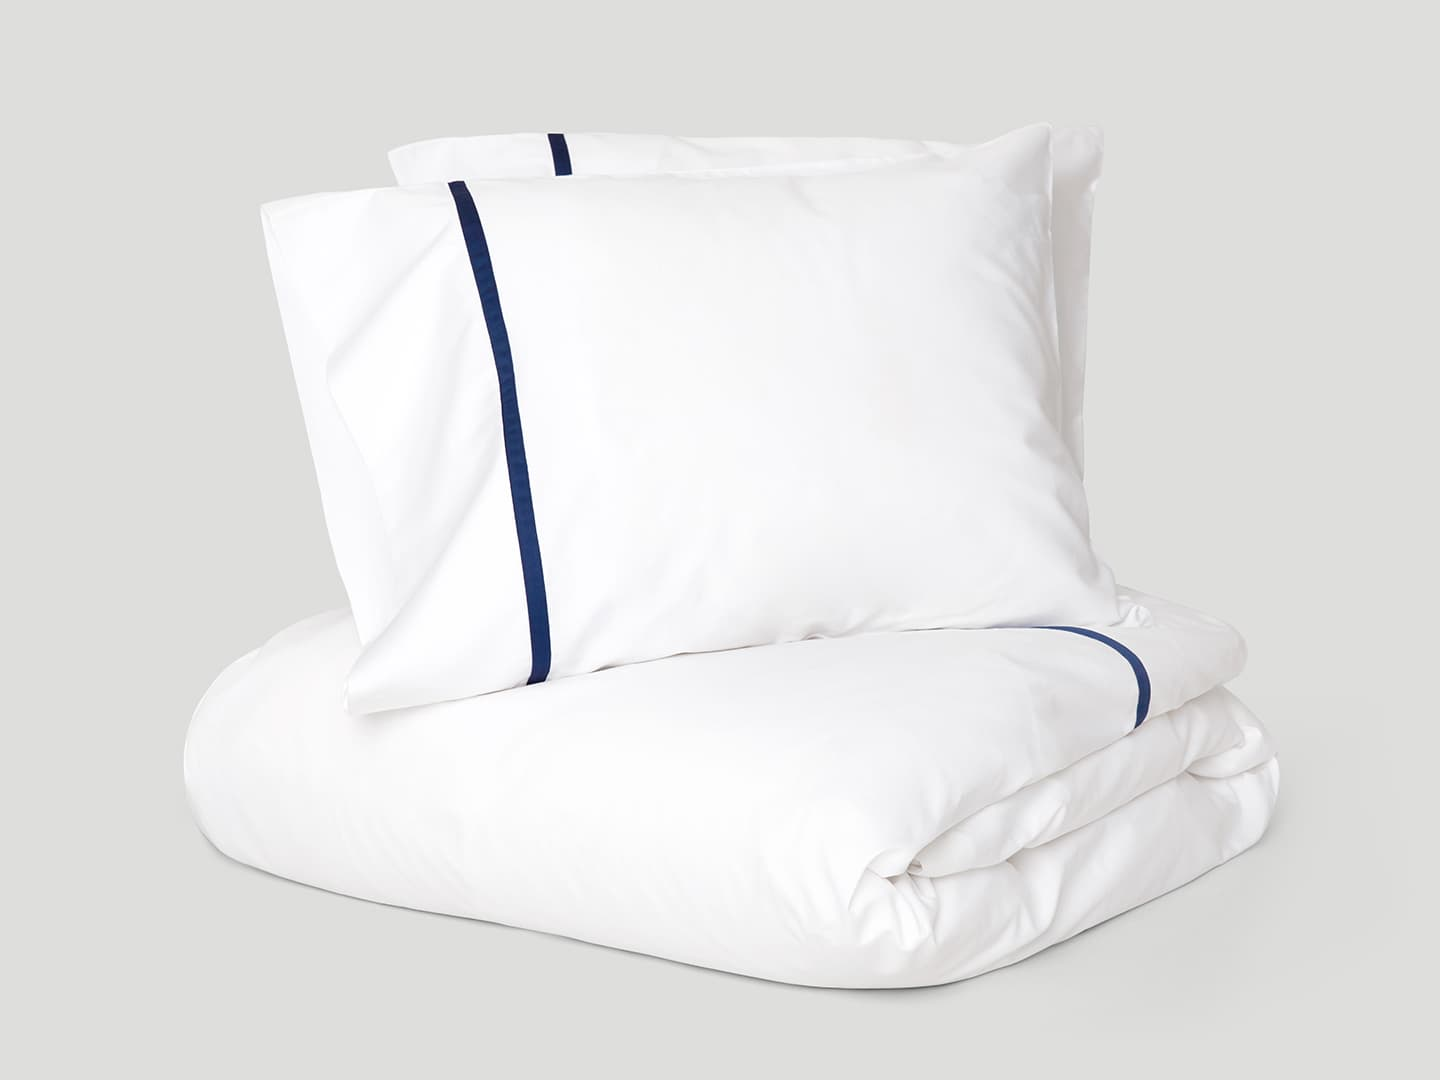 Duvet Cover Gatt - Cloud White